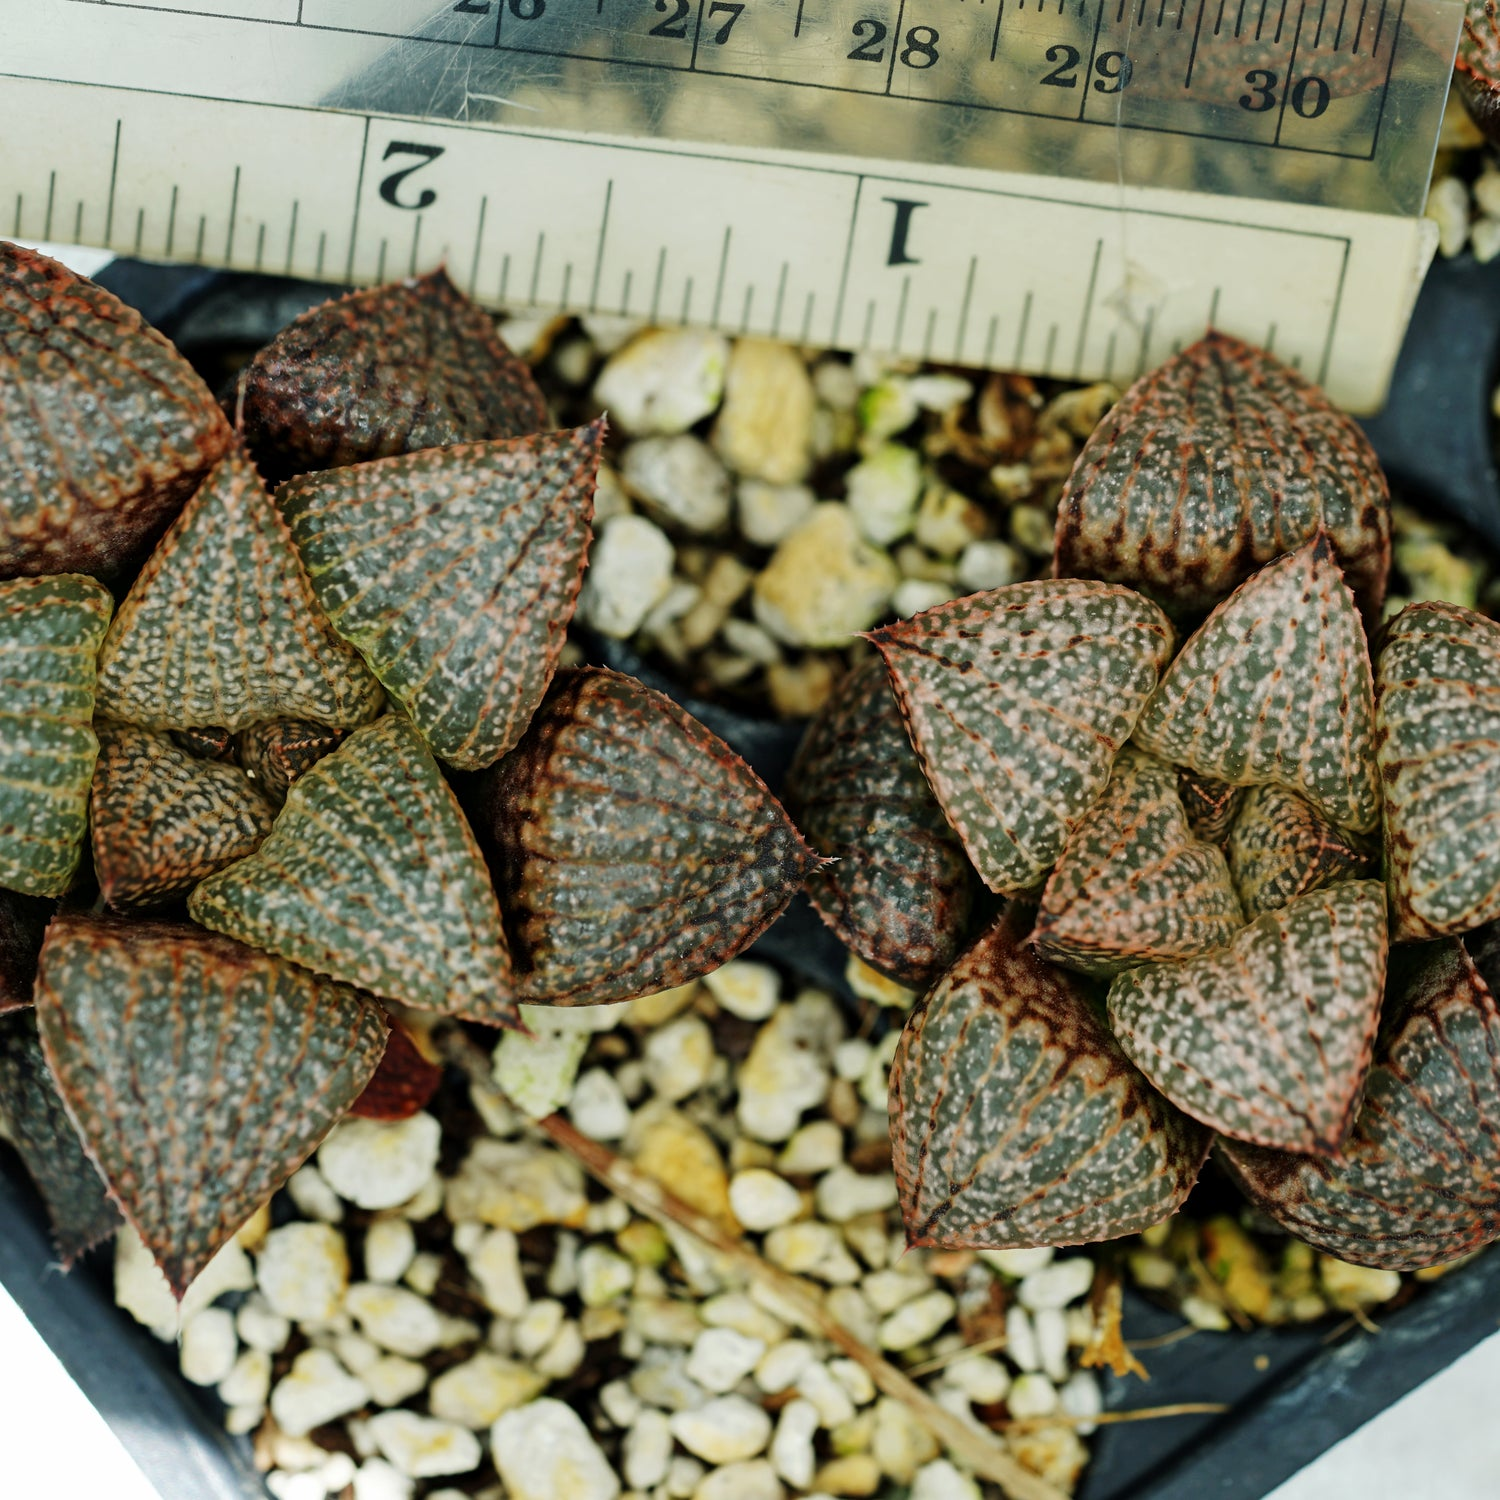 Haworthia picta x Scarlet Begonias hybrid series PP236, 2 siblings